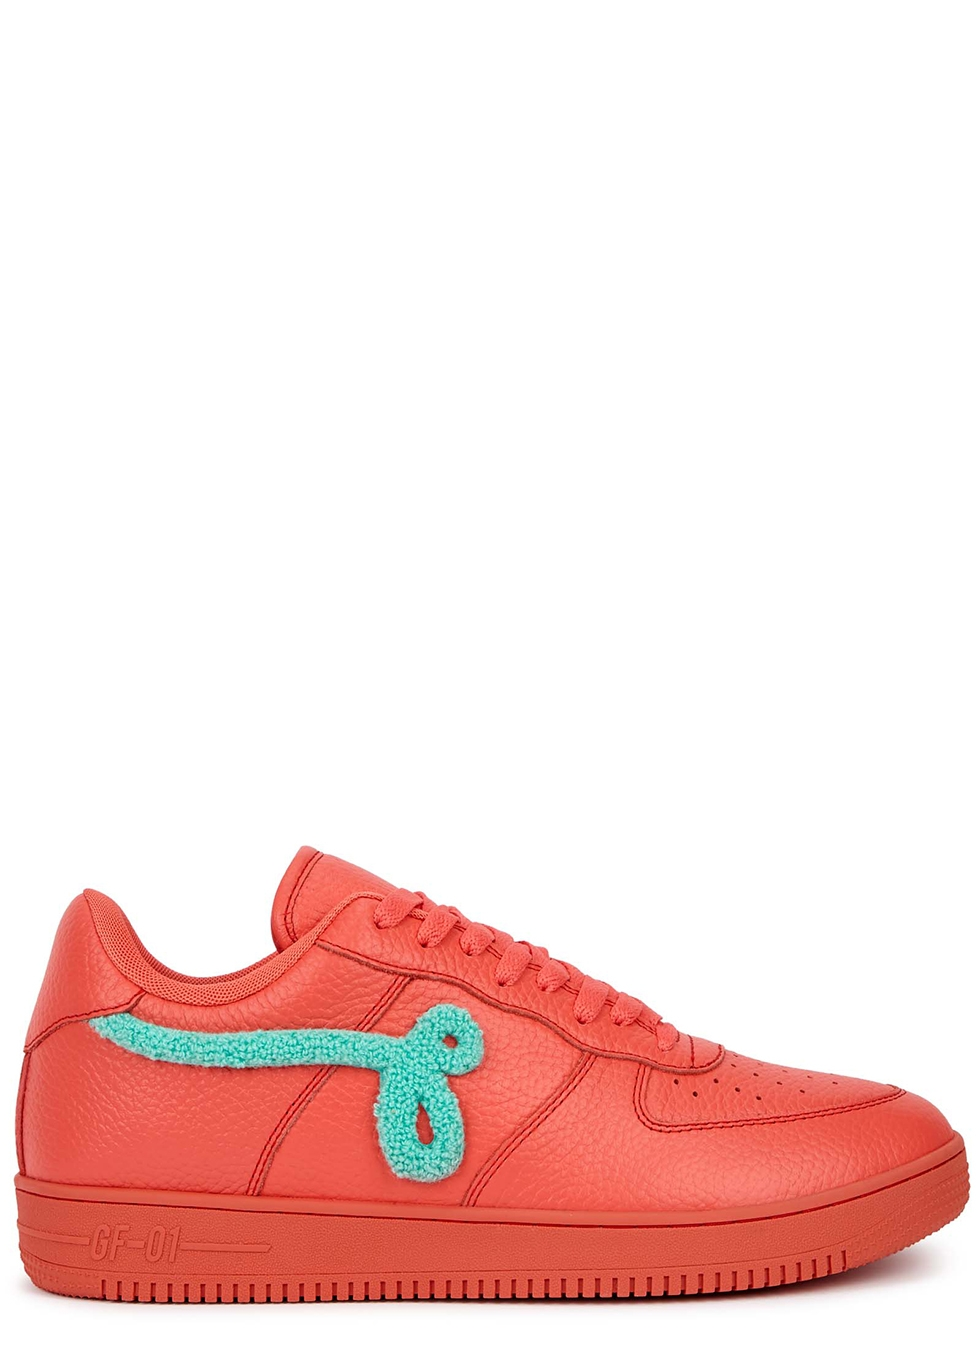 GF-01 coral leather sneakers